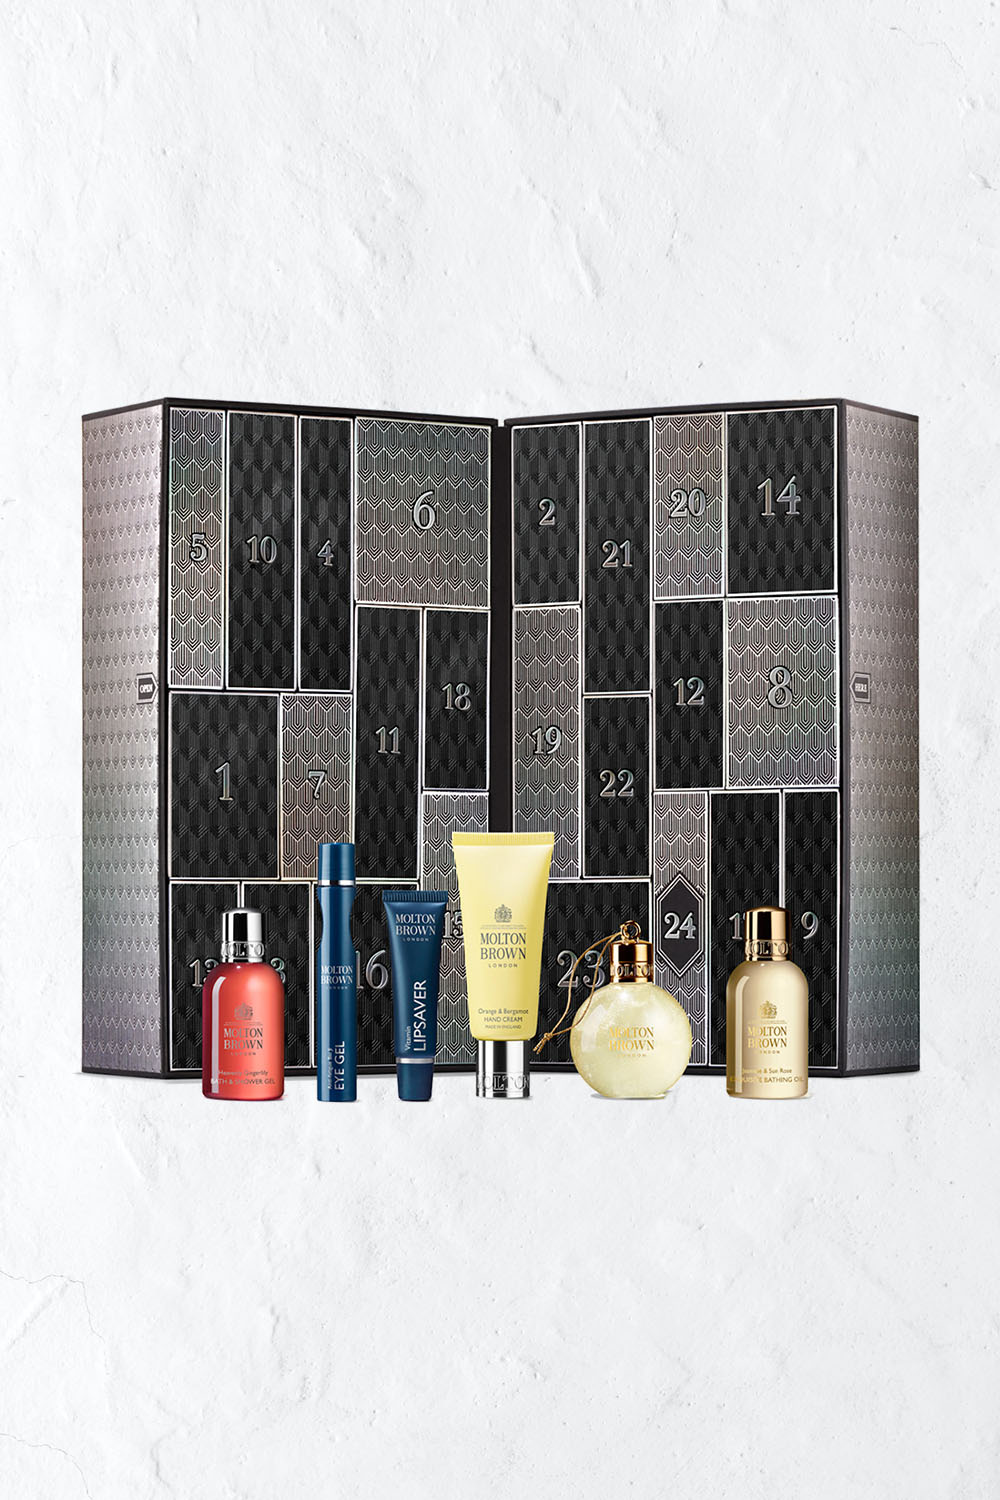 Molton Brown Adventskalender 2020